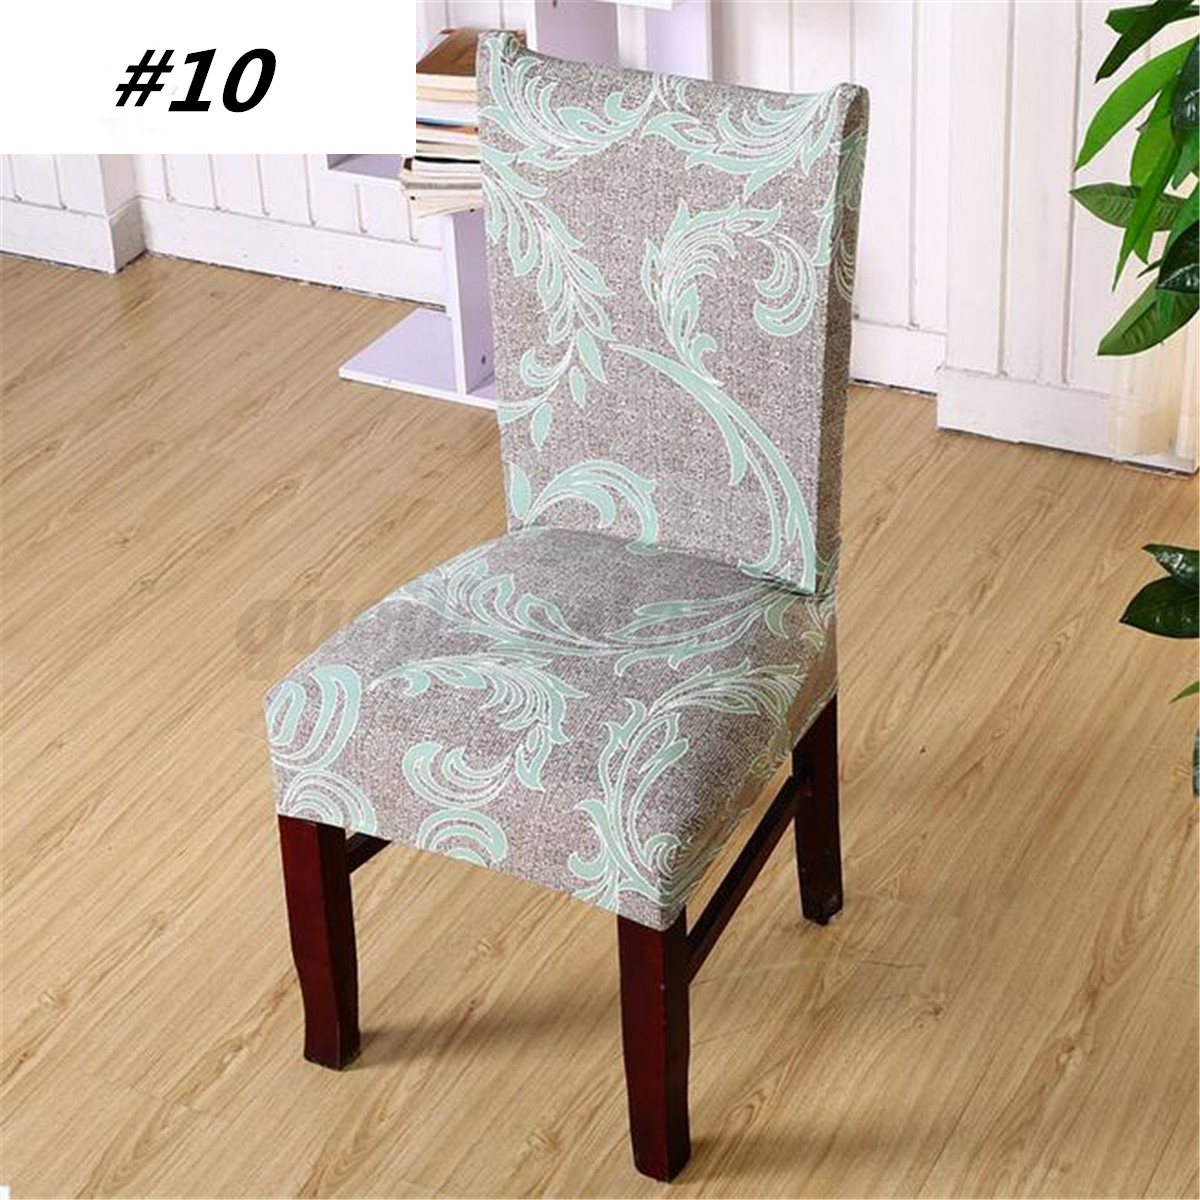 chair covers wedding yorkshire high chairs in egypt spandex stretch cover seat polyester washable